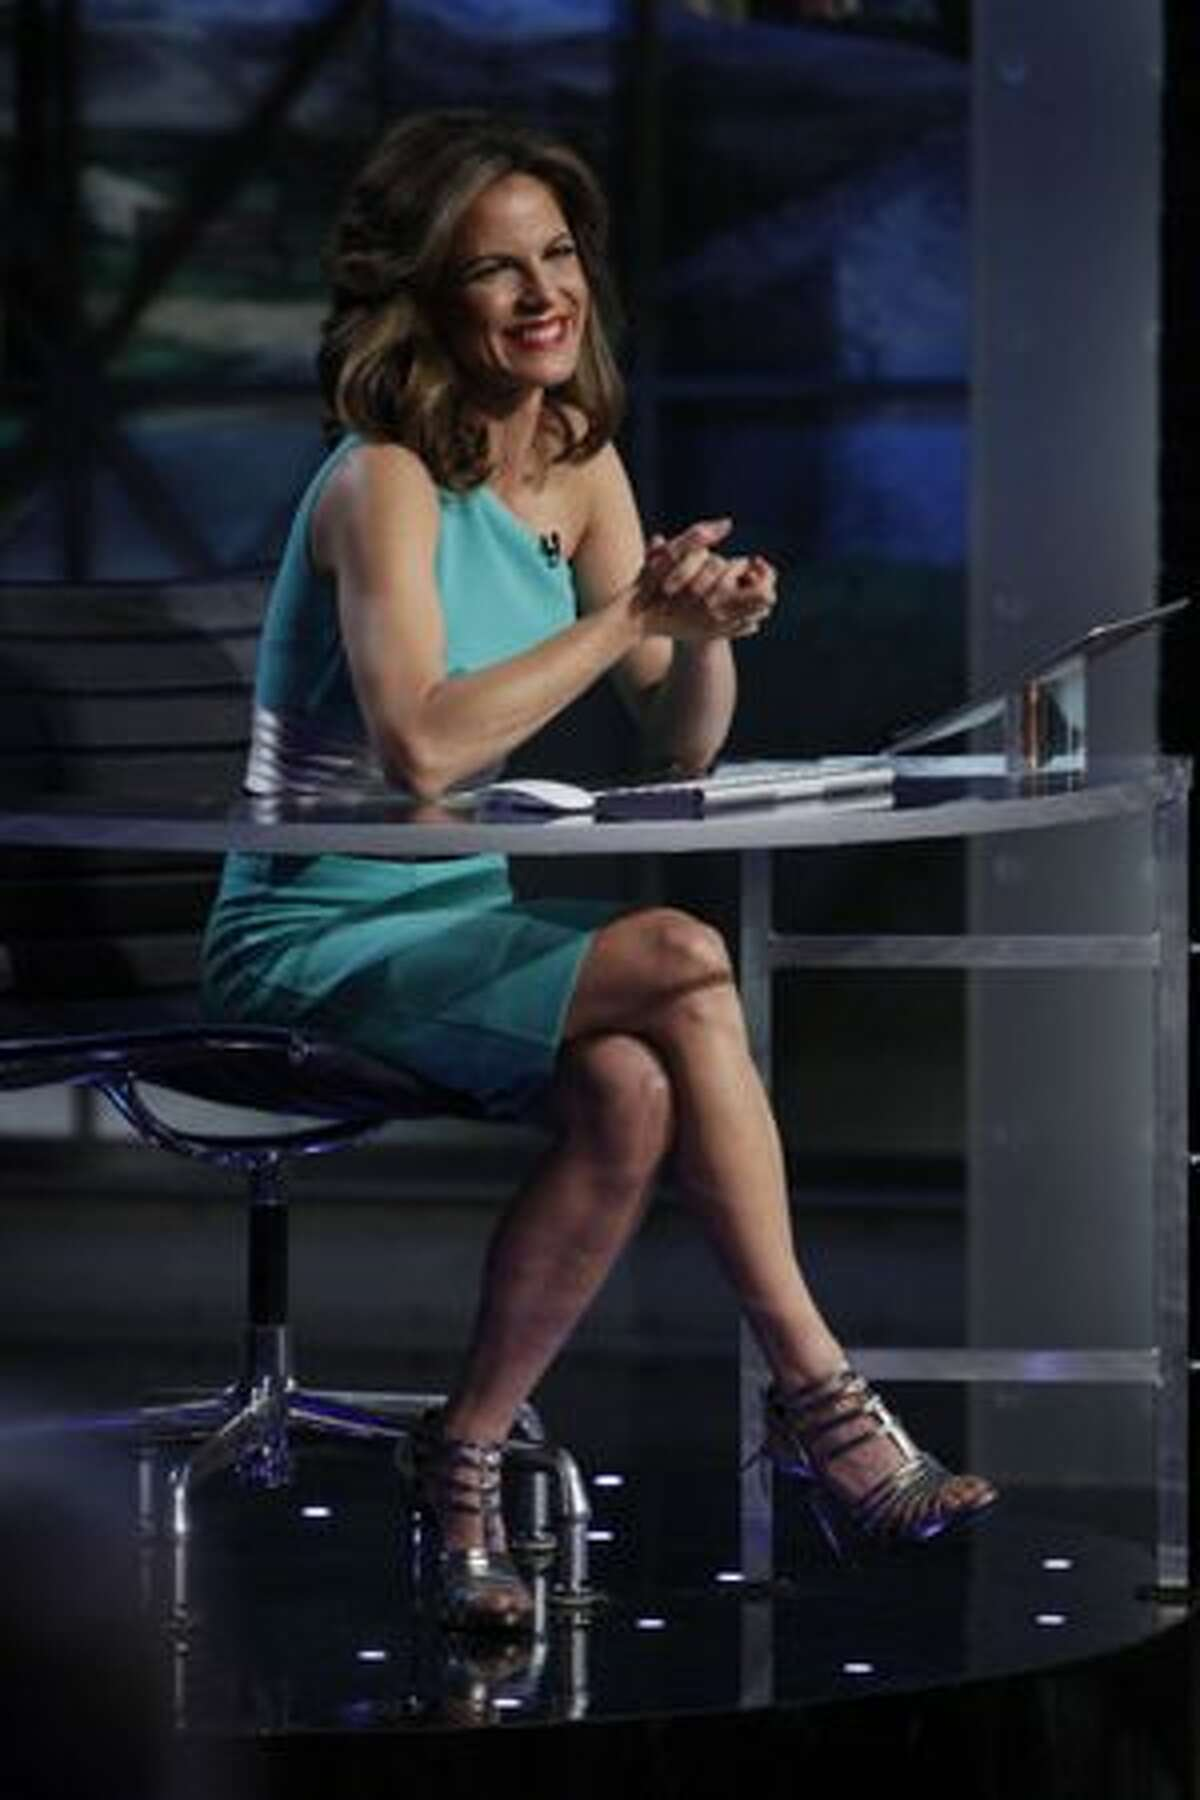 TV journalist Natalie Morales plays a key support role on NBC's